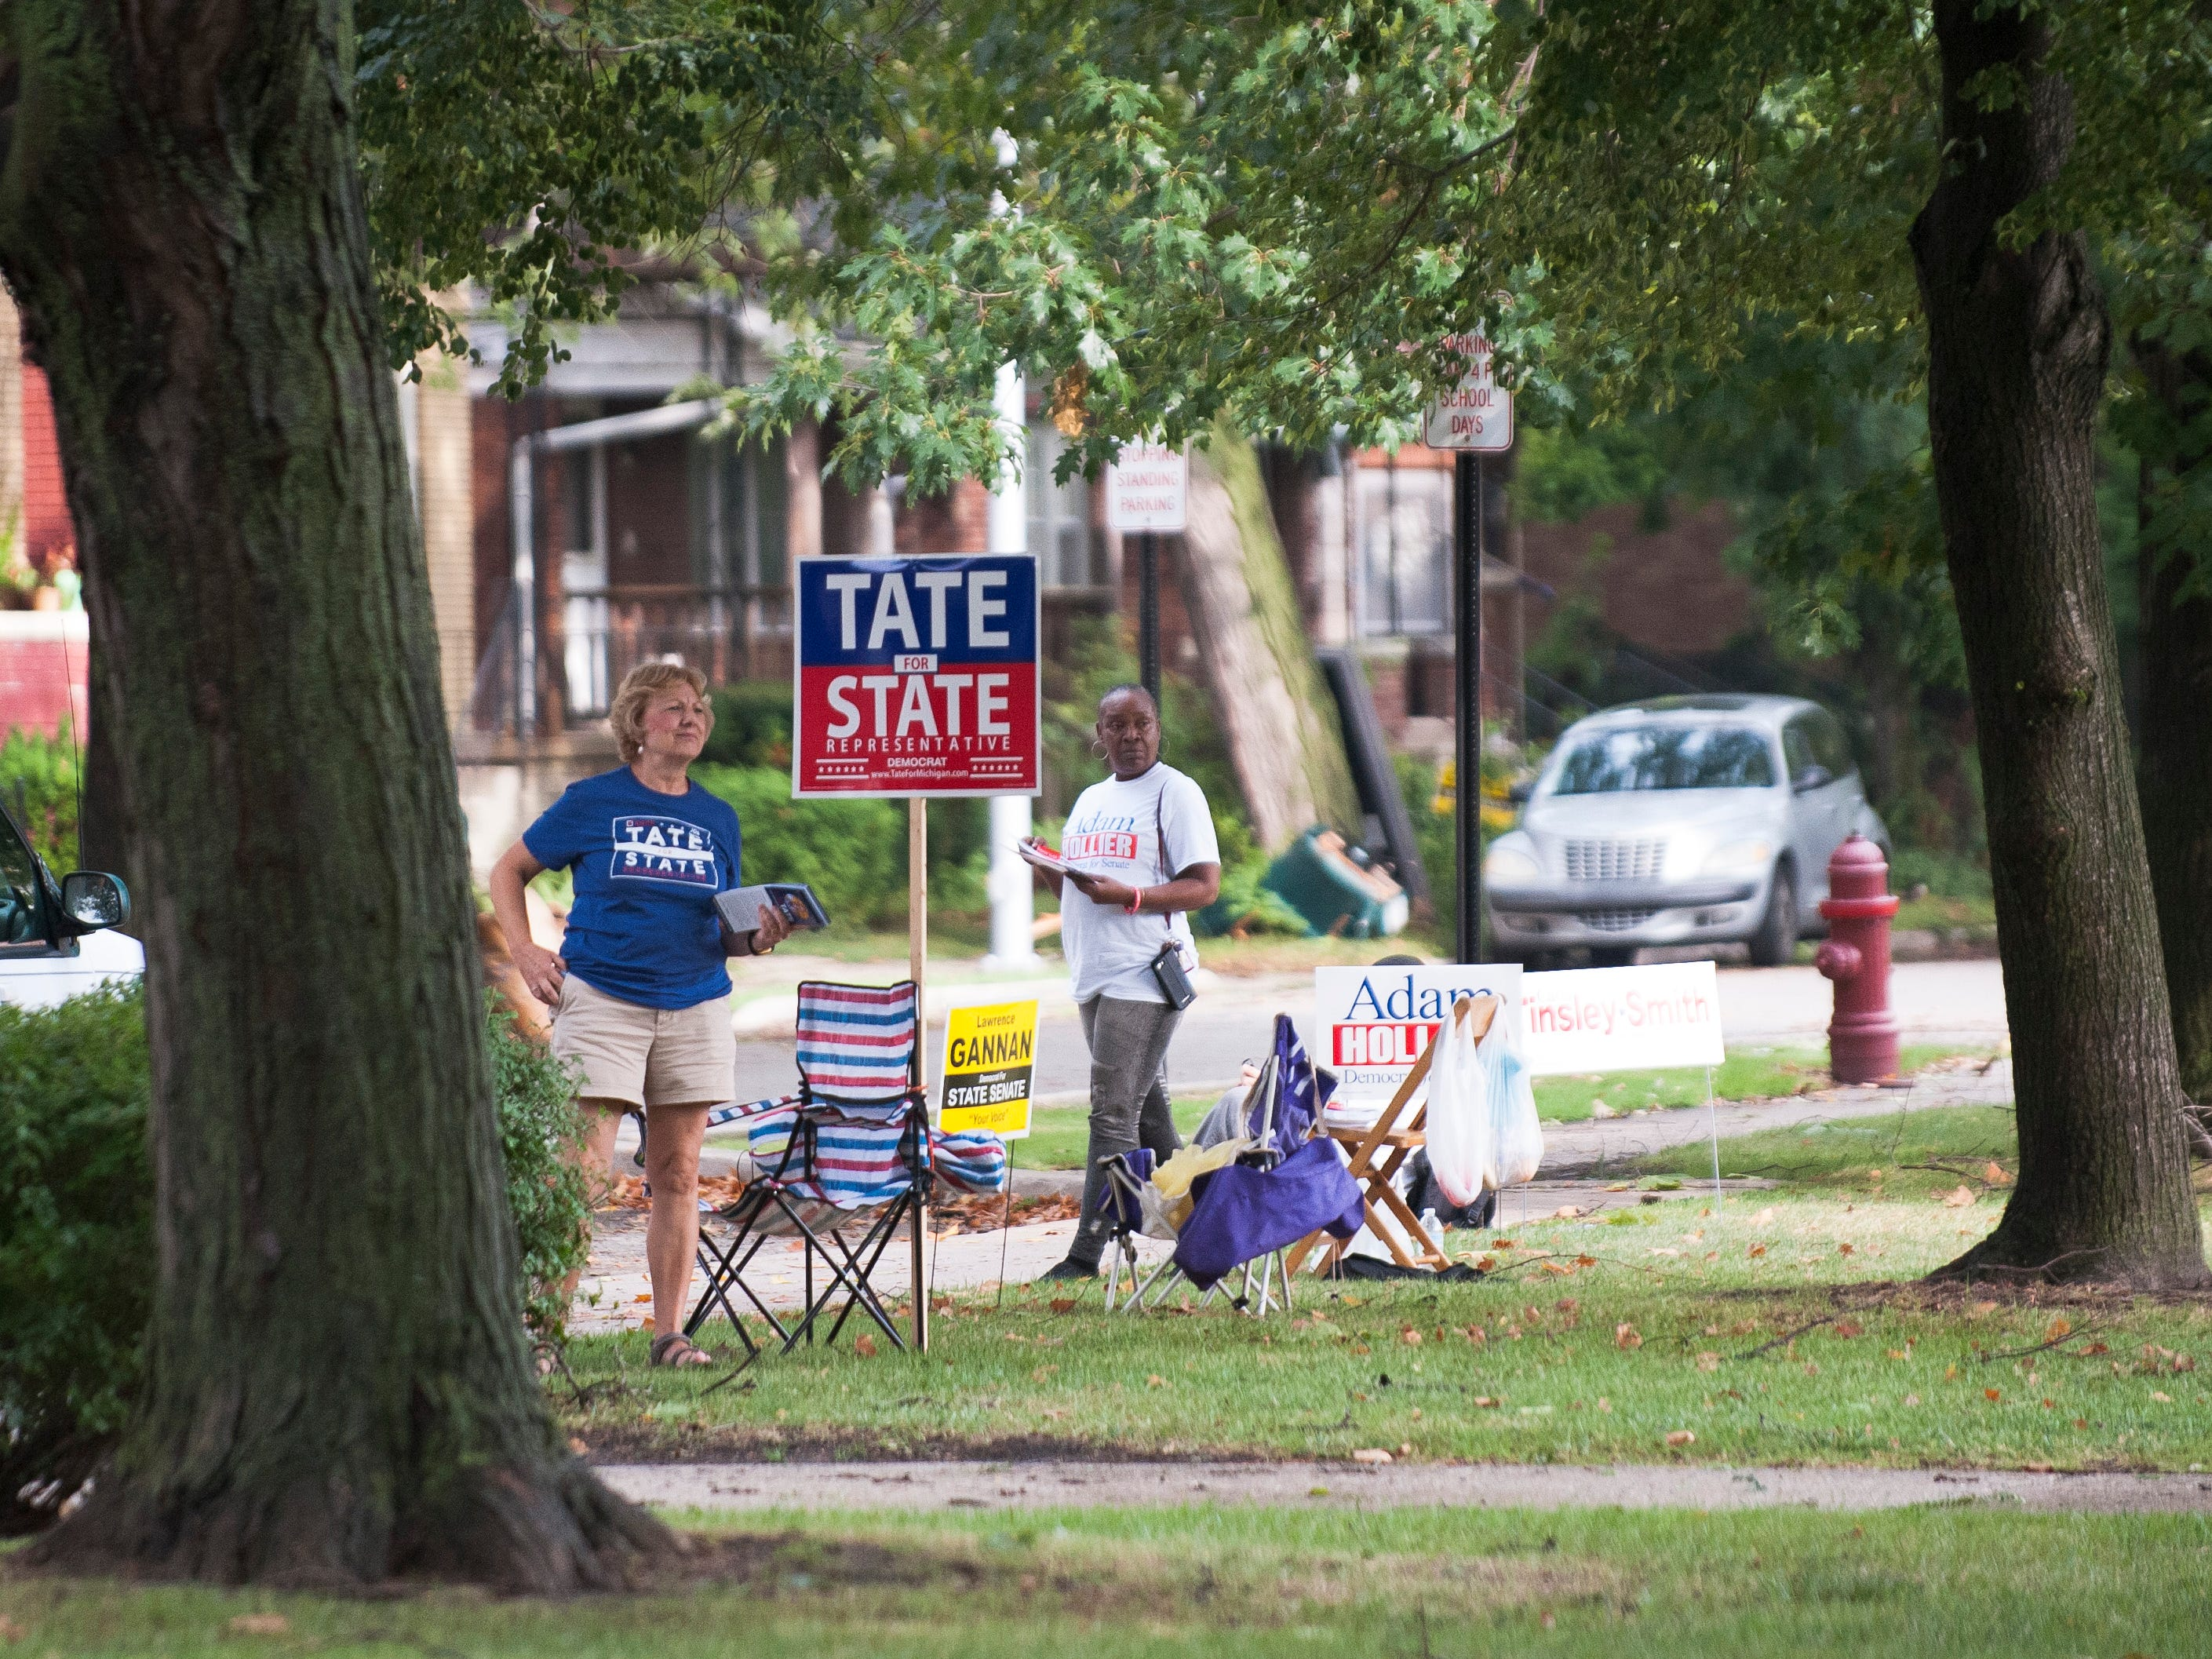 Campaign volunteers representing Democratic candidates Joe Tate, for state representative,  and Adam Hollier, for state senate,  stand at the ready to discuss their candidates' merits outside the polling station at Trombly School in Grosse Pointe Park.